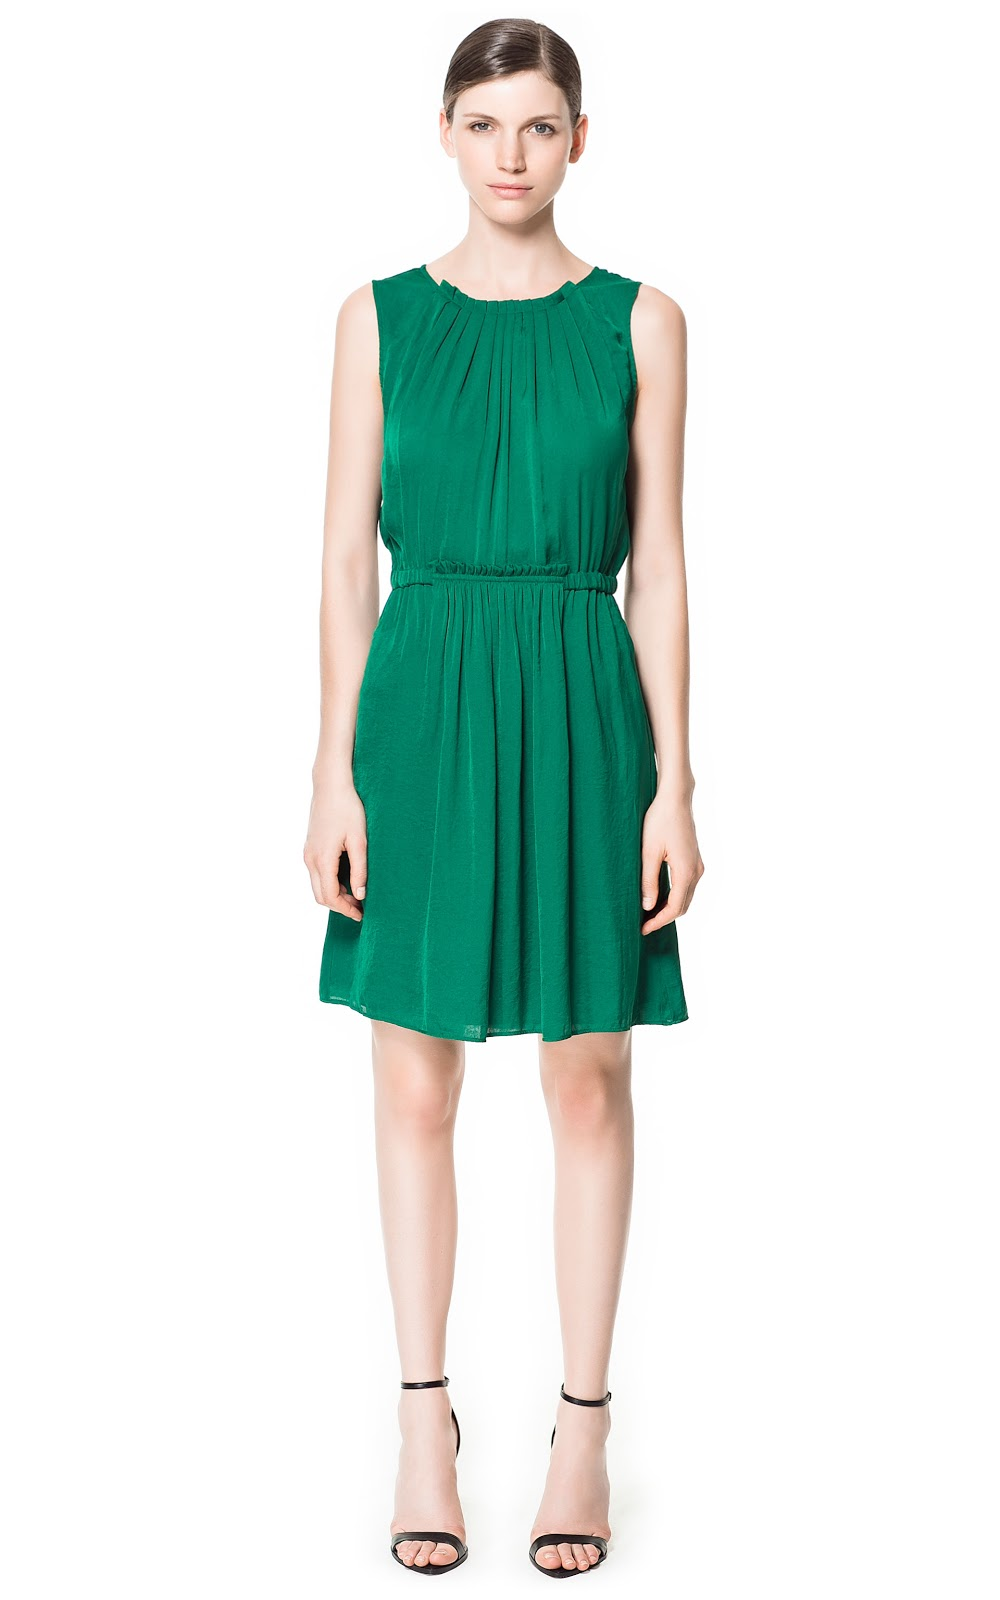 smart. simple. chic.: Fifty Shades of Green